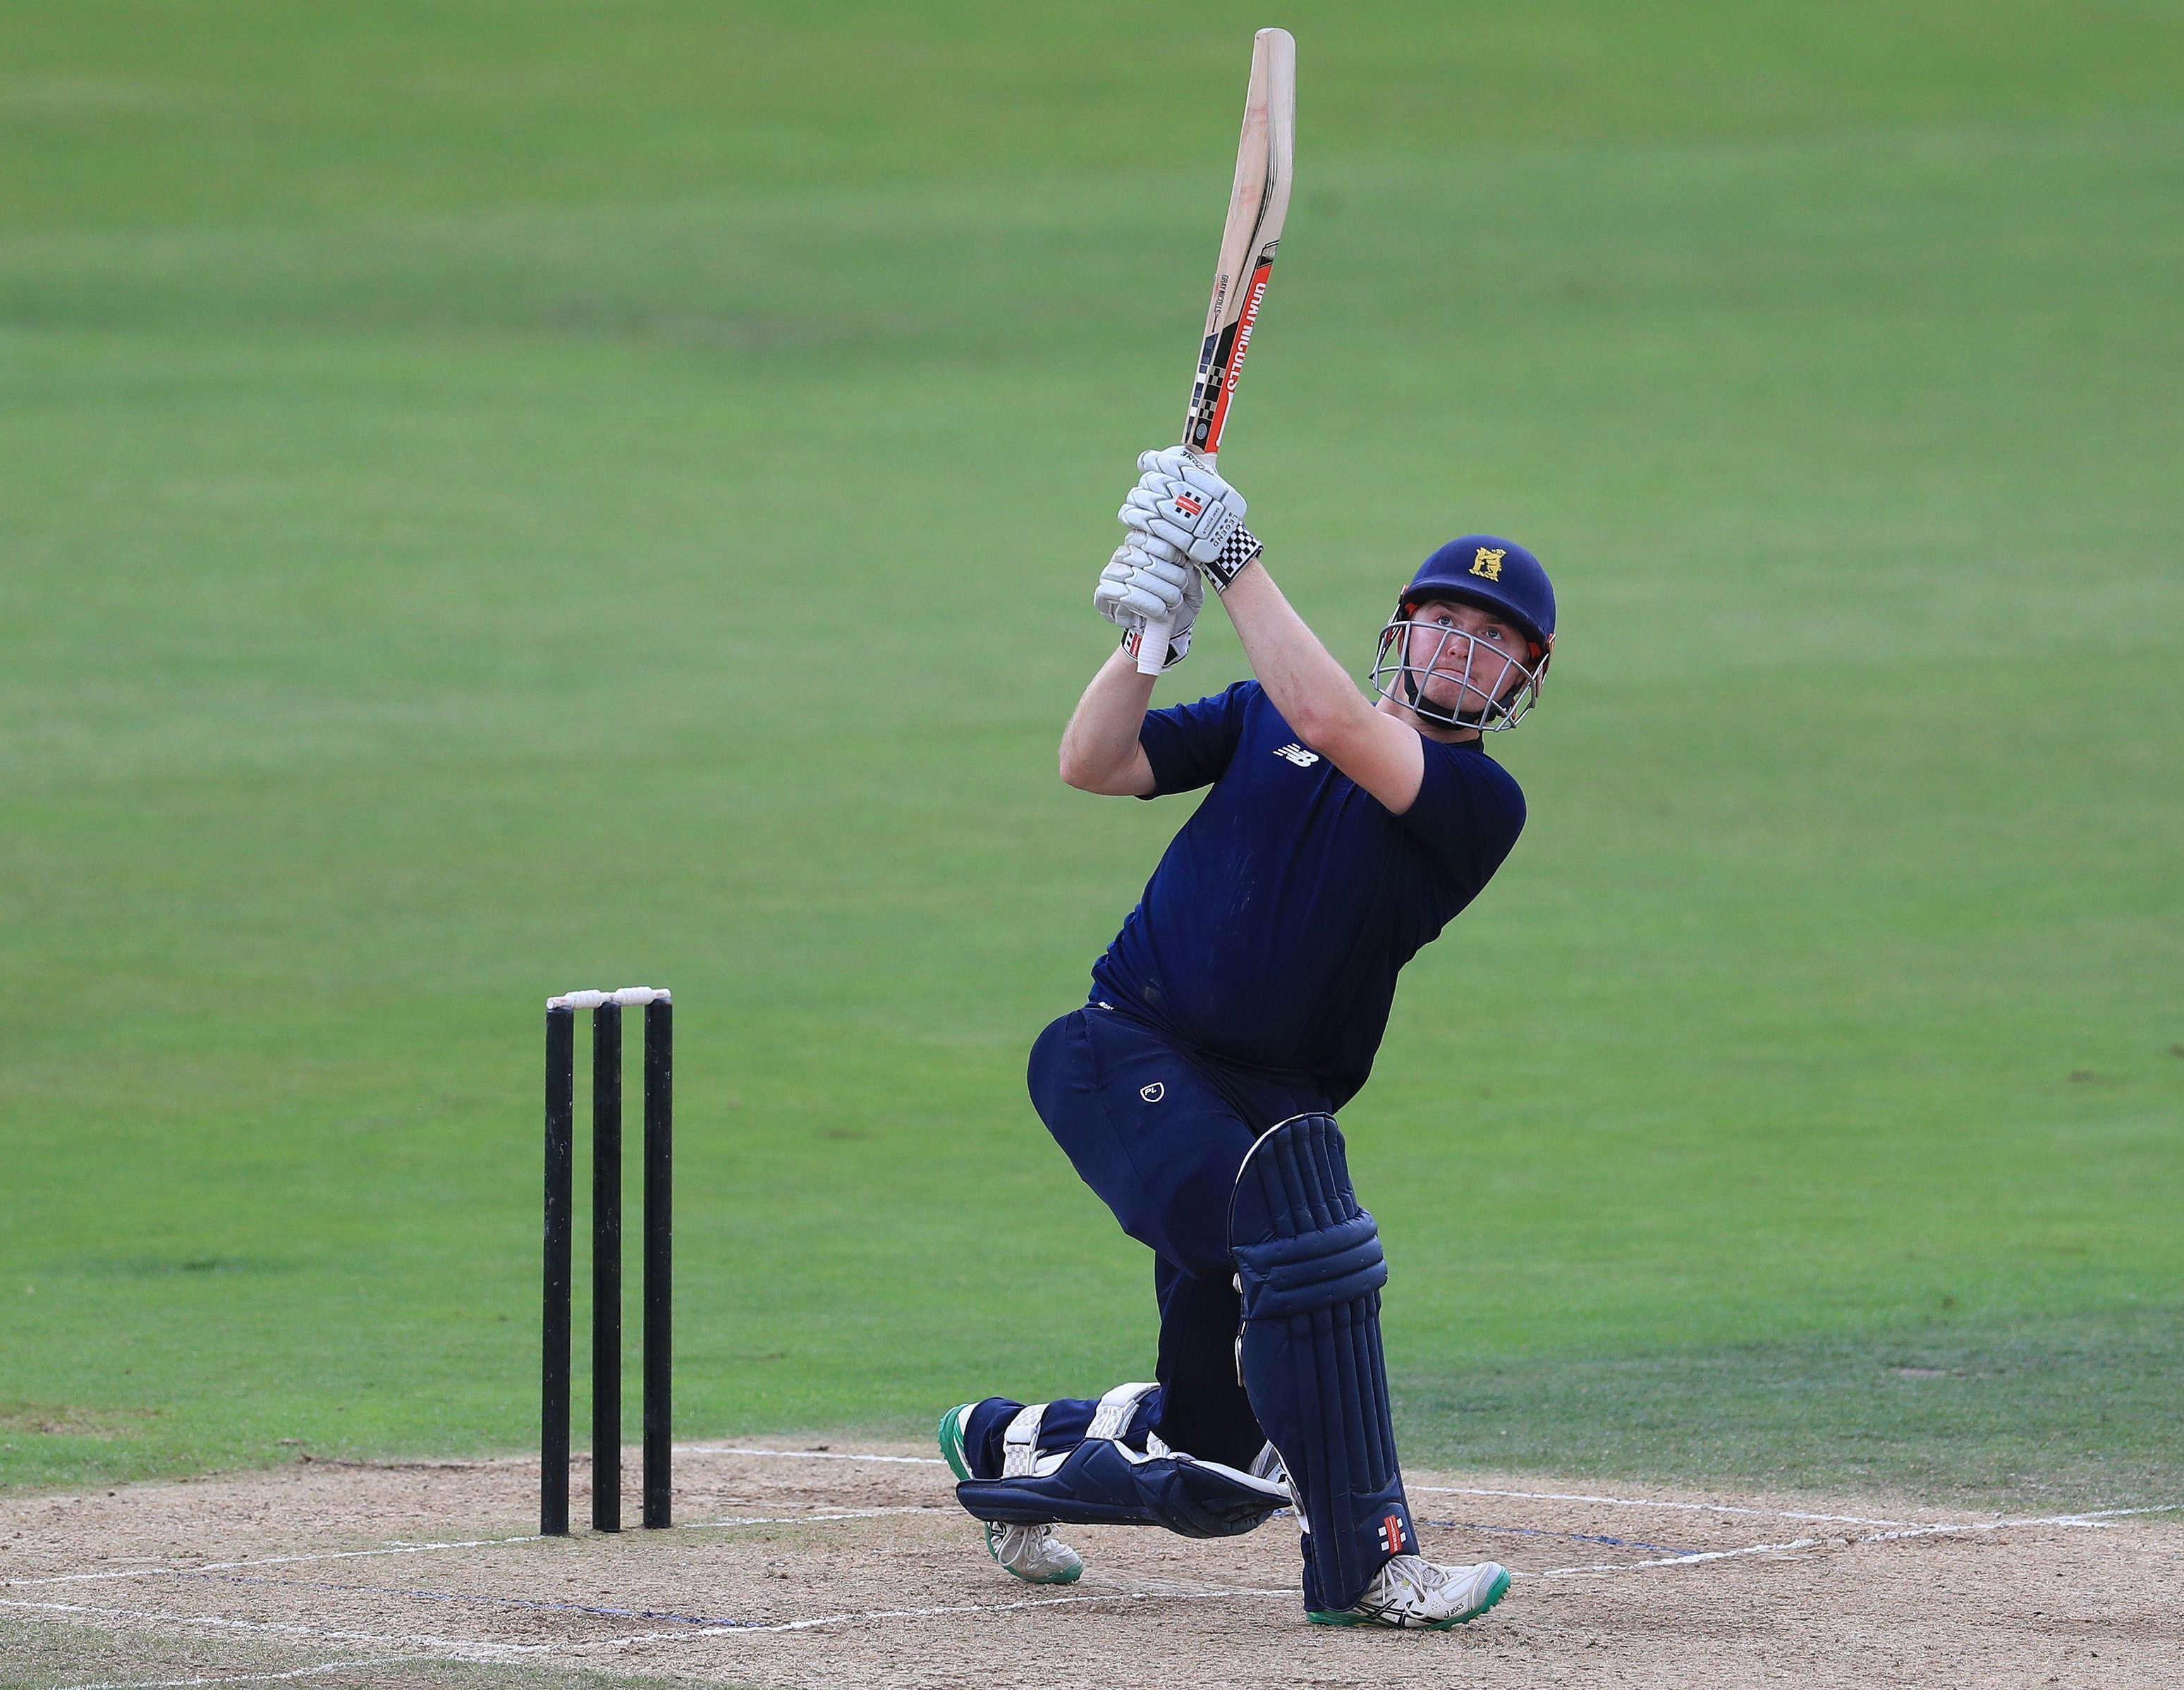 Ed Pollock takes to the skies during The Hundred trial game at Trent Bridge